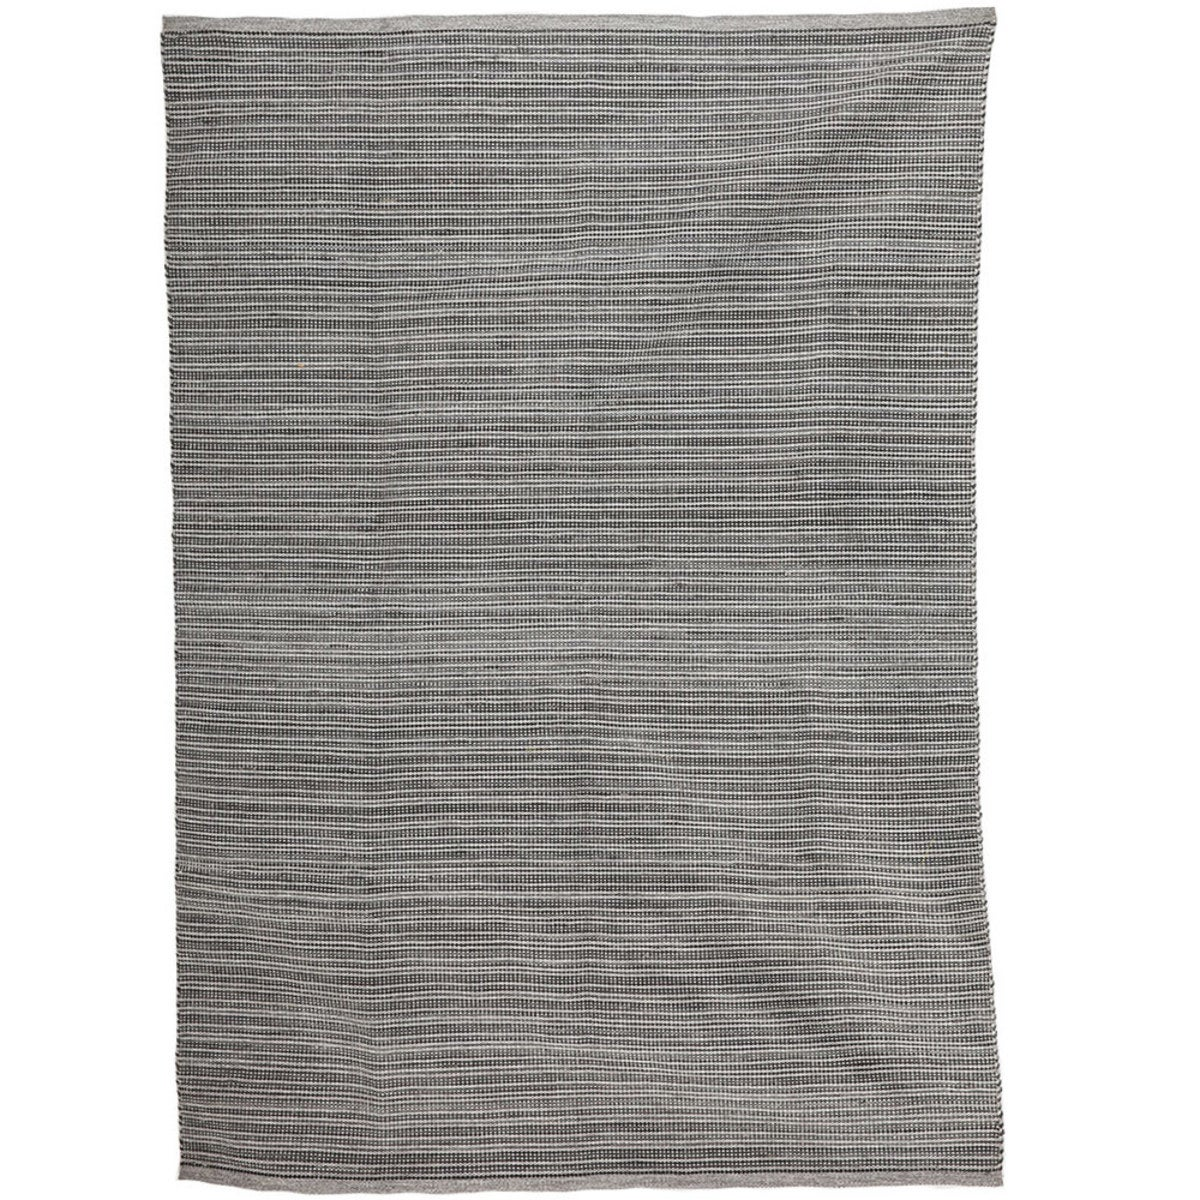 Handwoven Recycled Rubber Indoor/Outdoor Rugs